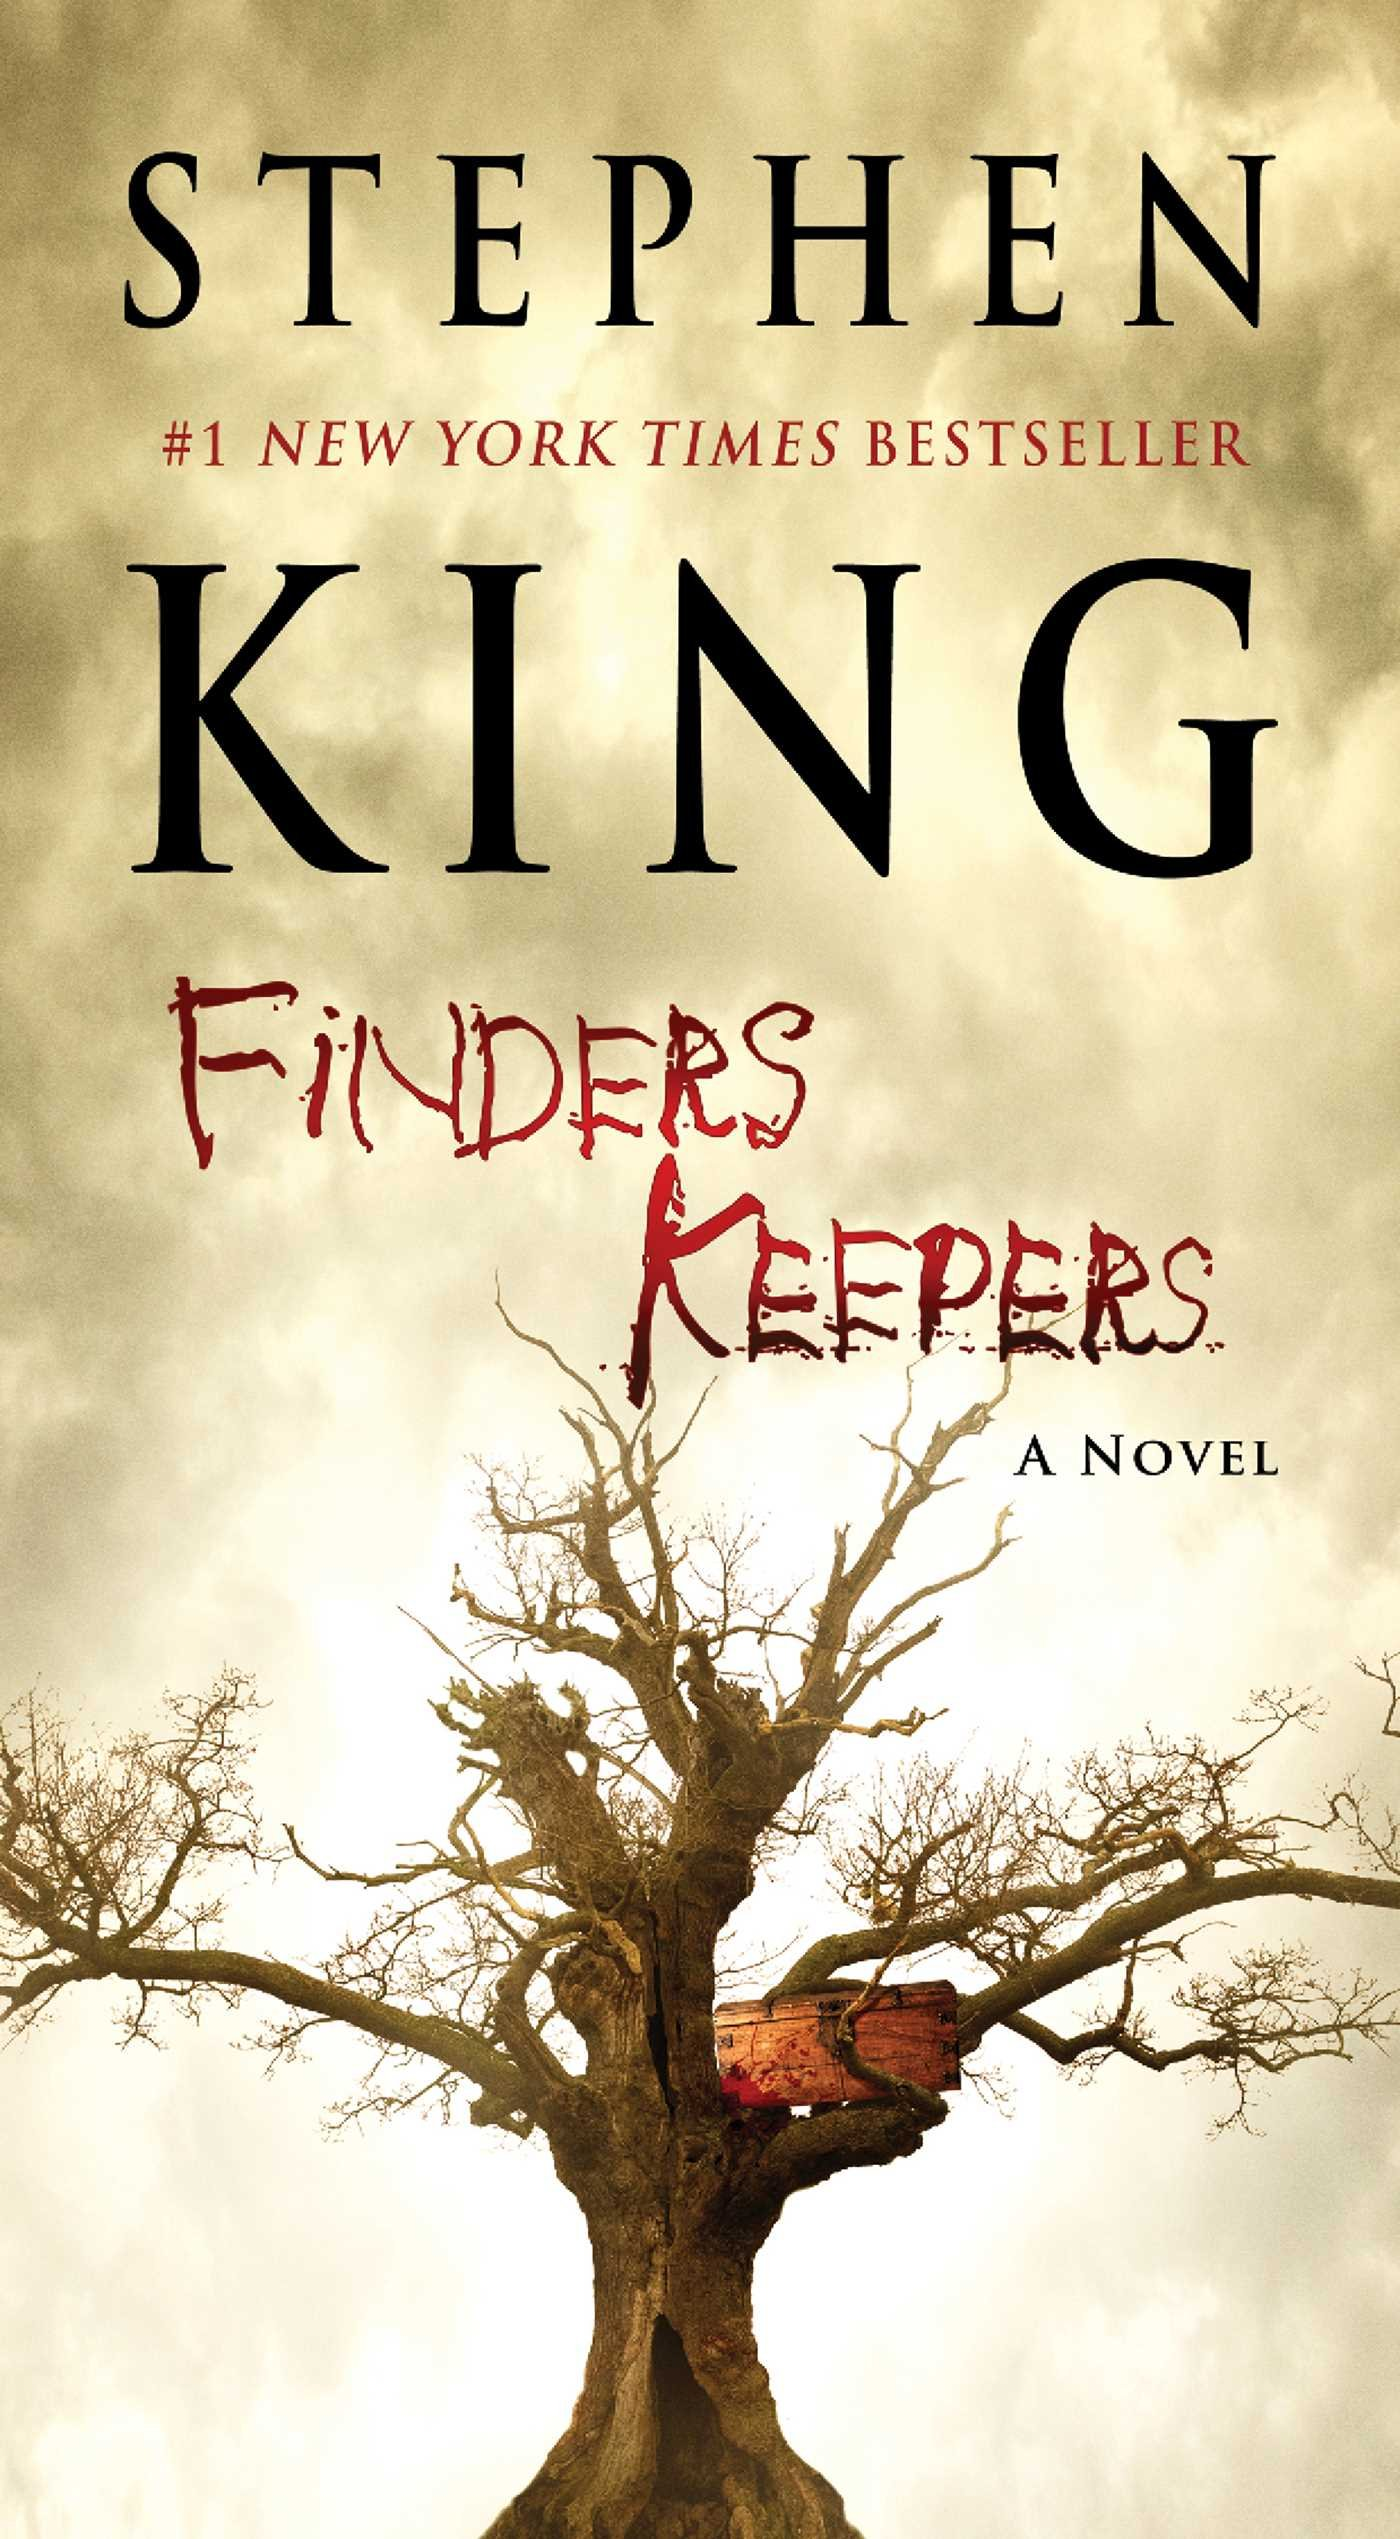 Worksheet Read Finders Keepers Online Free finders keepers 2nd book of mr mercedes trilogy archive palaver a forum for stephen king fans collectors